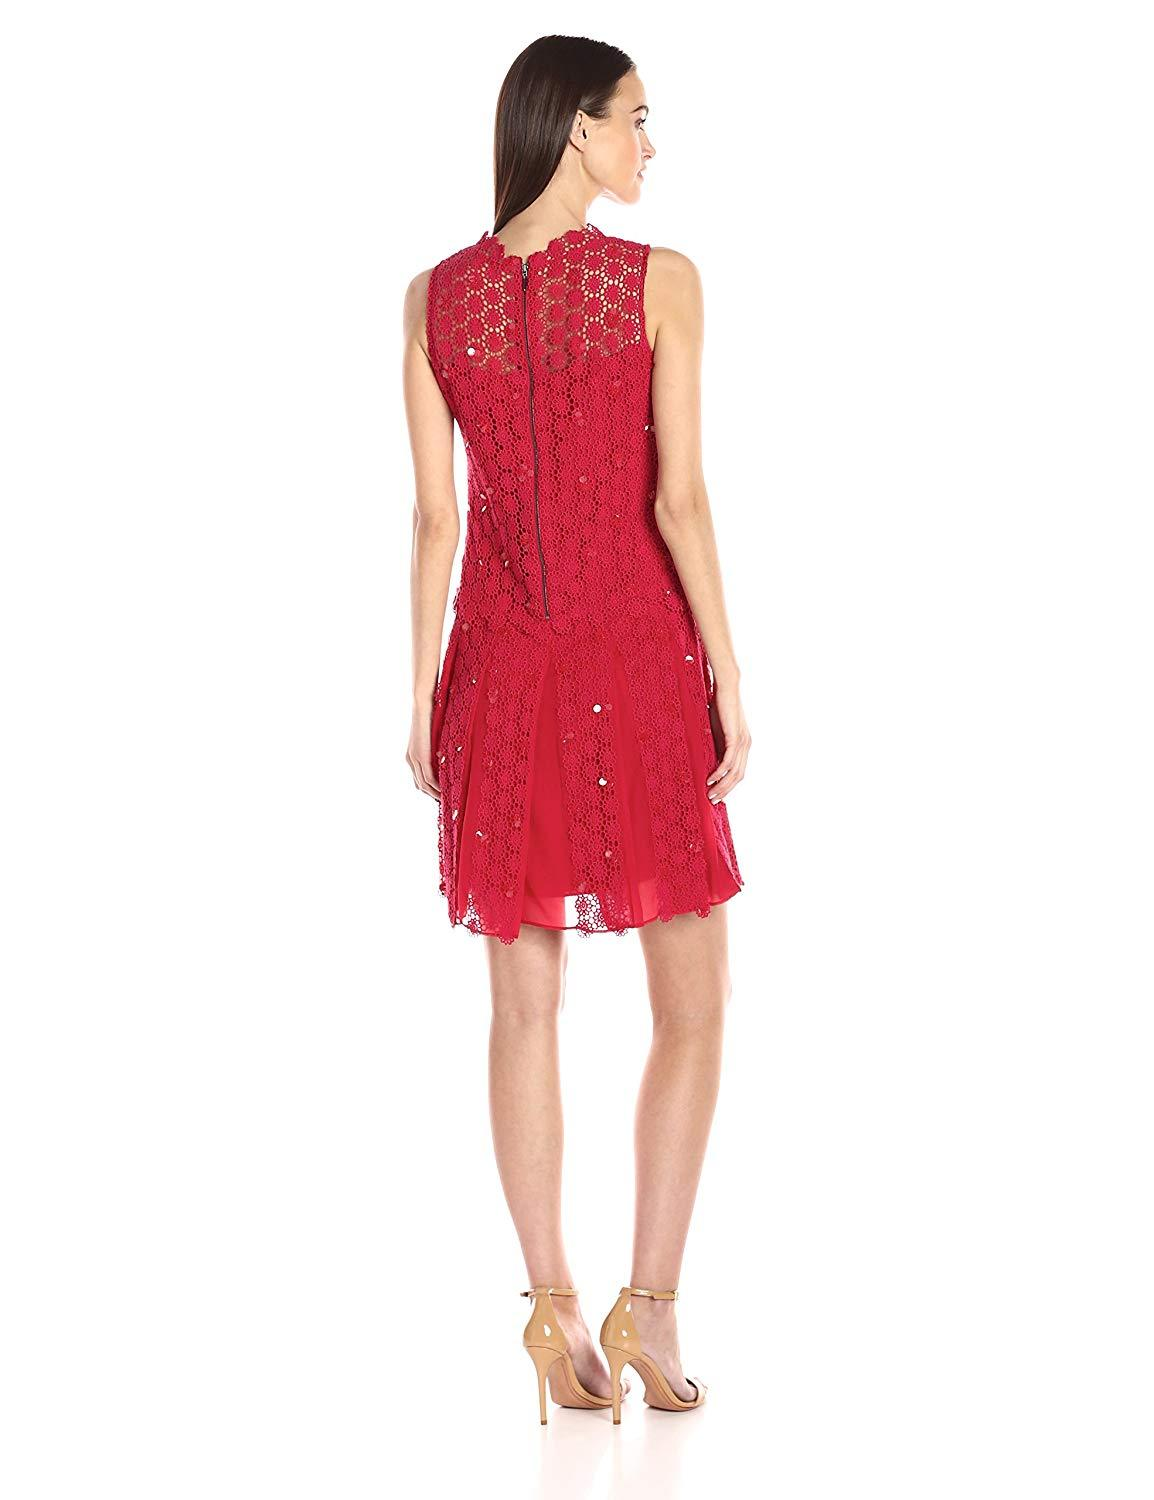 Elie Tahari - E41VA607 Embellished Crochet A-line Dress In Red